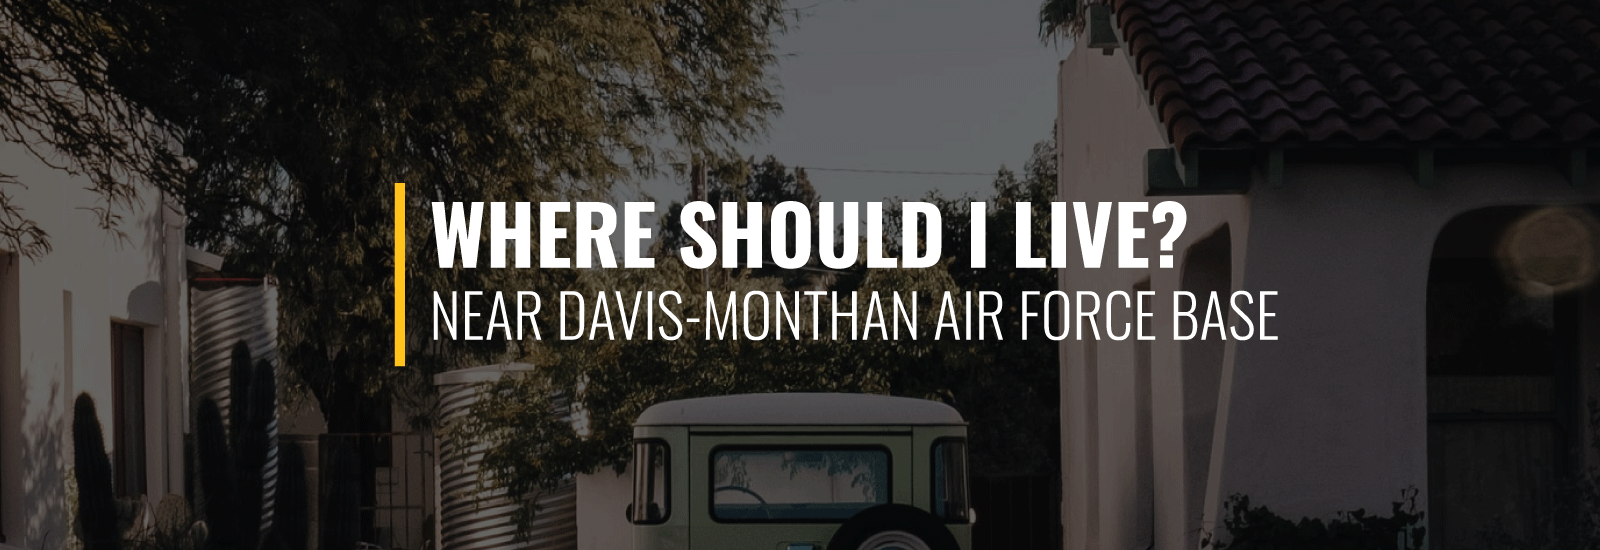 Where Should I Live Near Davis-Monthan AFB?